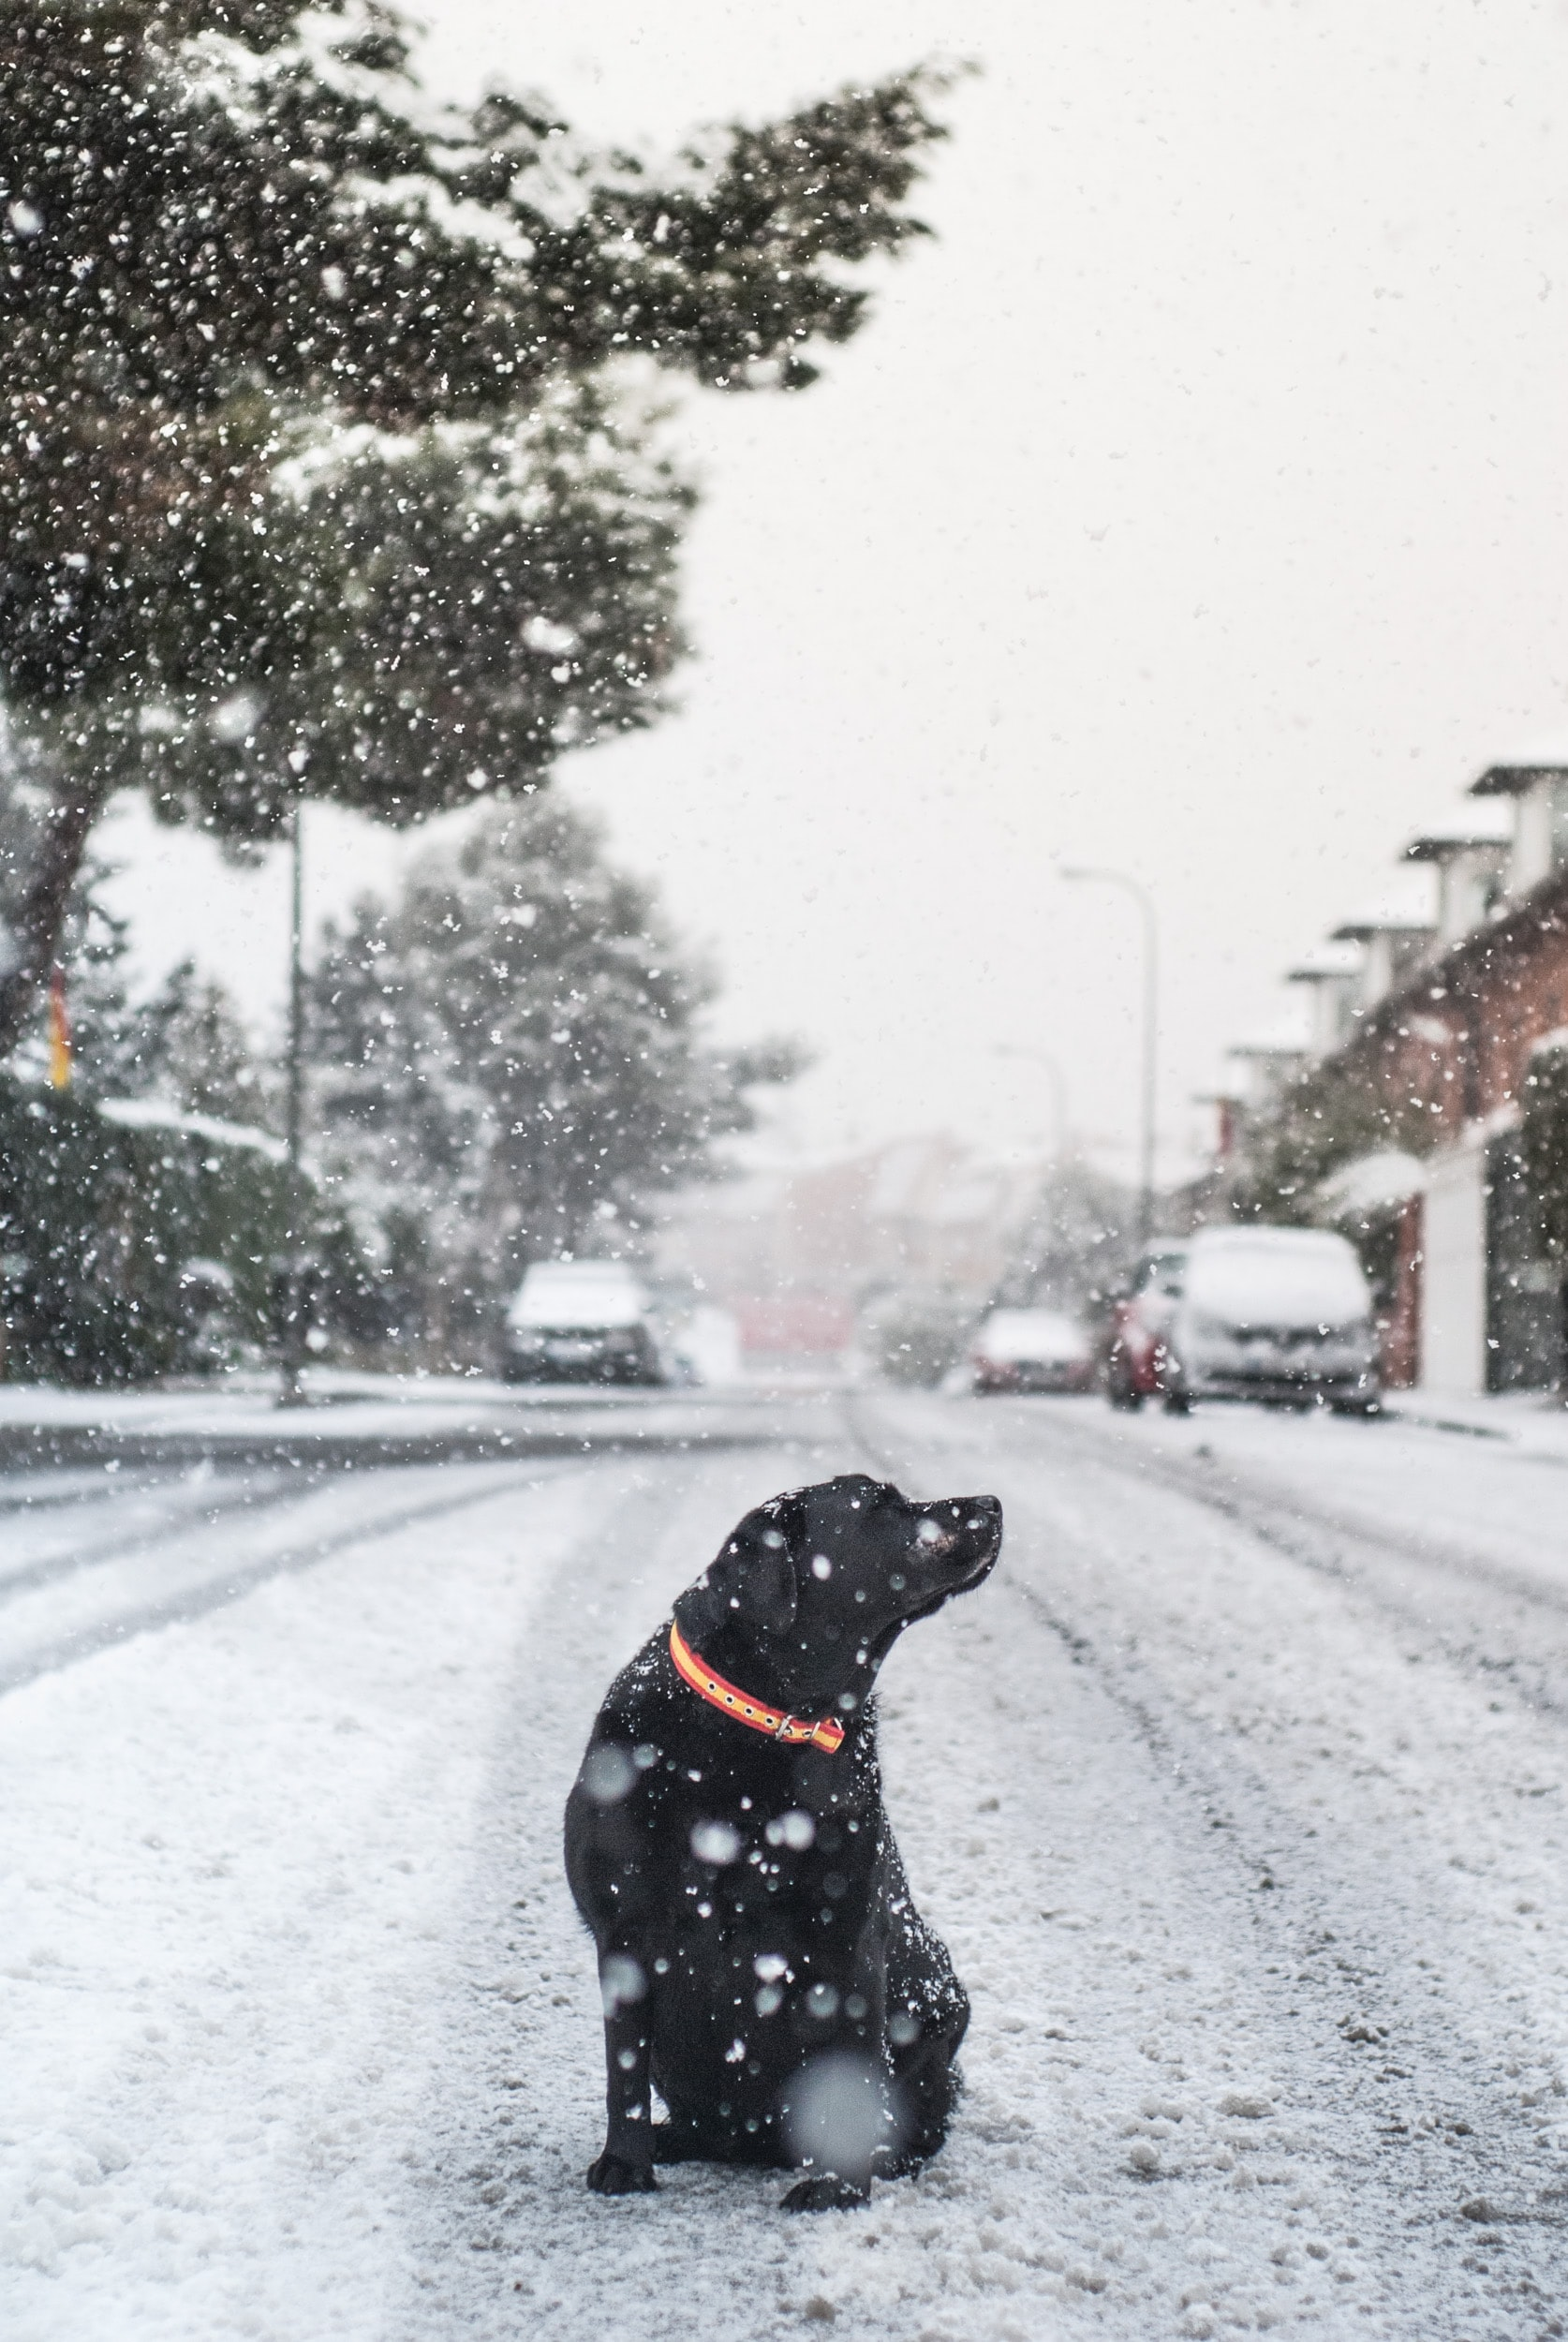 adult short-coated black dog in middle of road with snow during daytime